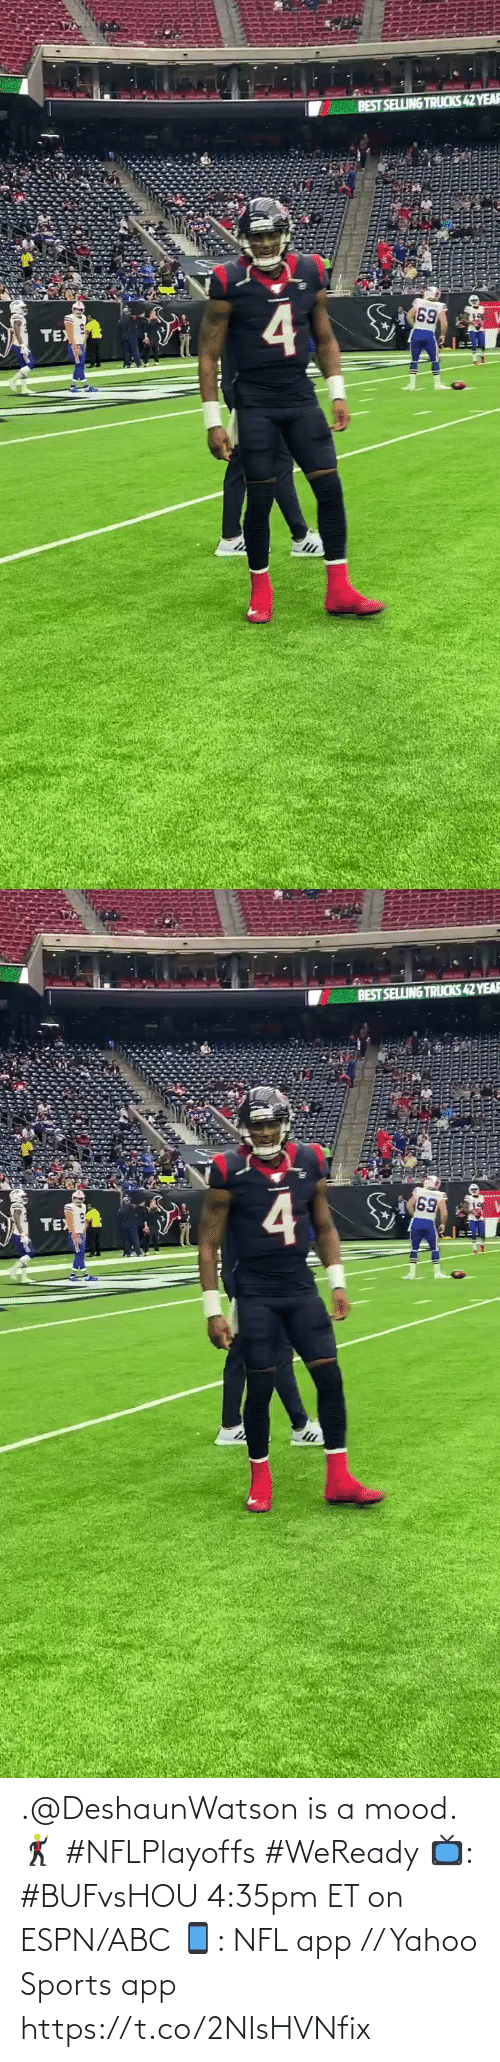 Trucks: BEST SELLING TRUCKS 42 YEAF  169  TEX   BEST SELLING TRUCKS 42 YEAR  69  TEX .@DeshaunWatson is a mood. 🕺 #NFLPlayoffs #WeReady  📺: #BUFvsHOU 4:35pm ET on ESPN/ABC 📱: NFL app // Yahoo Sports app https://t.co/2NIsHVNfix